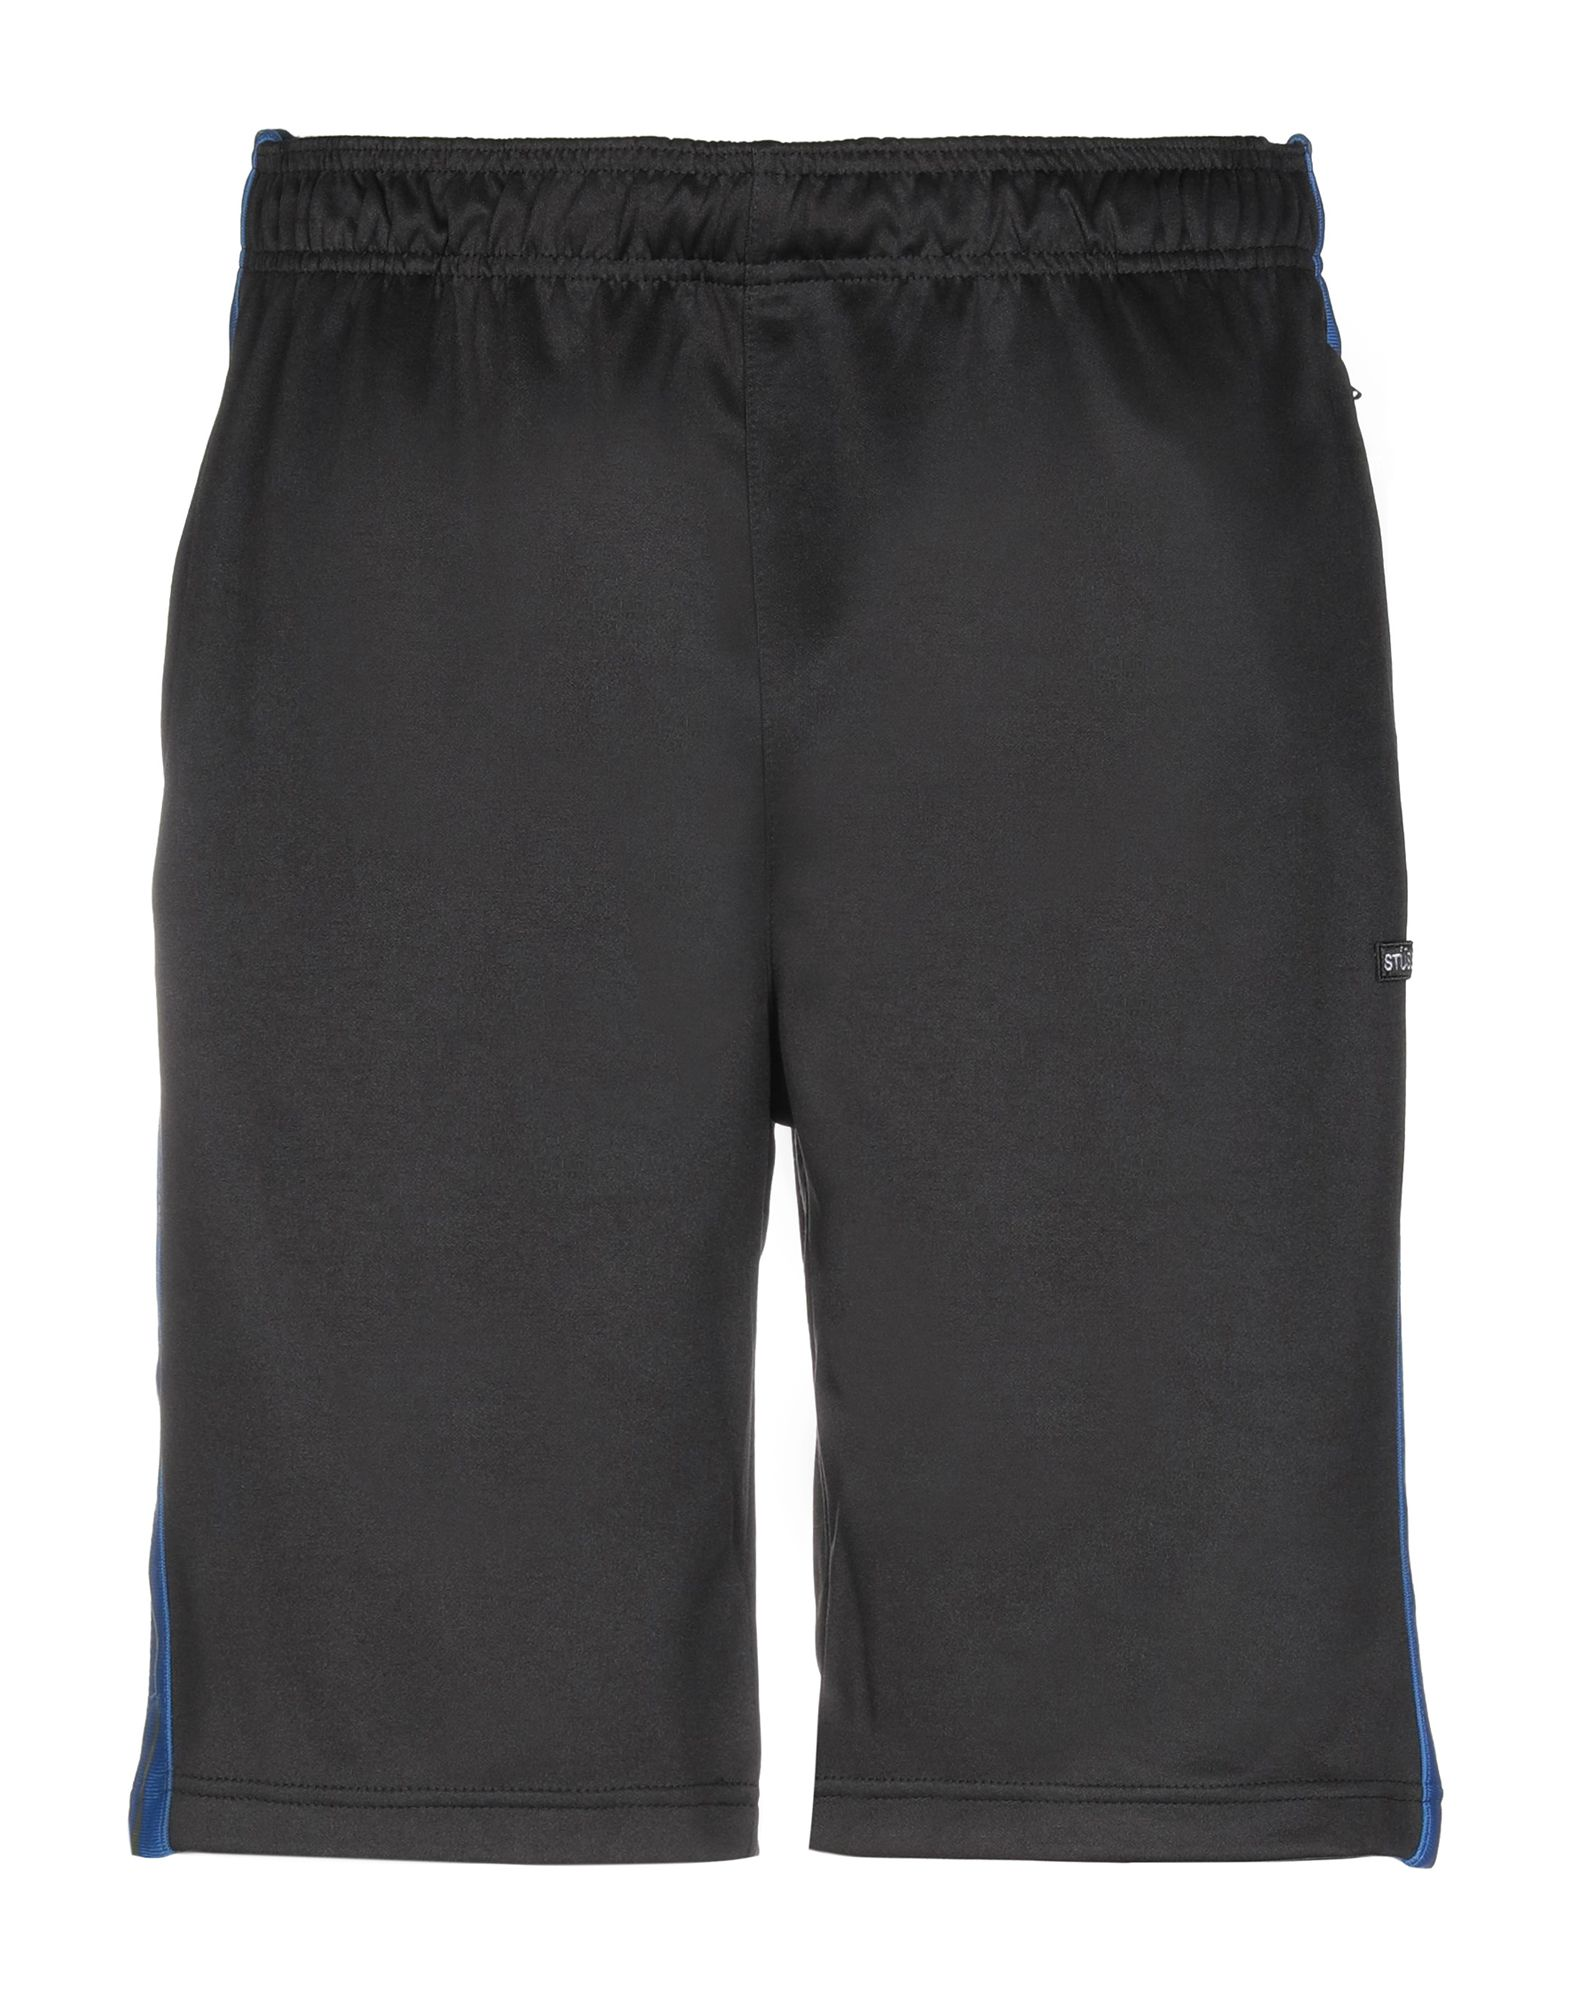 Shorts Clothing, Shoes, Accessories Useful Stussy Shorts Size 8